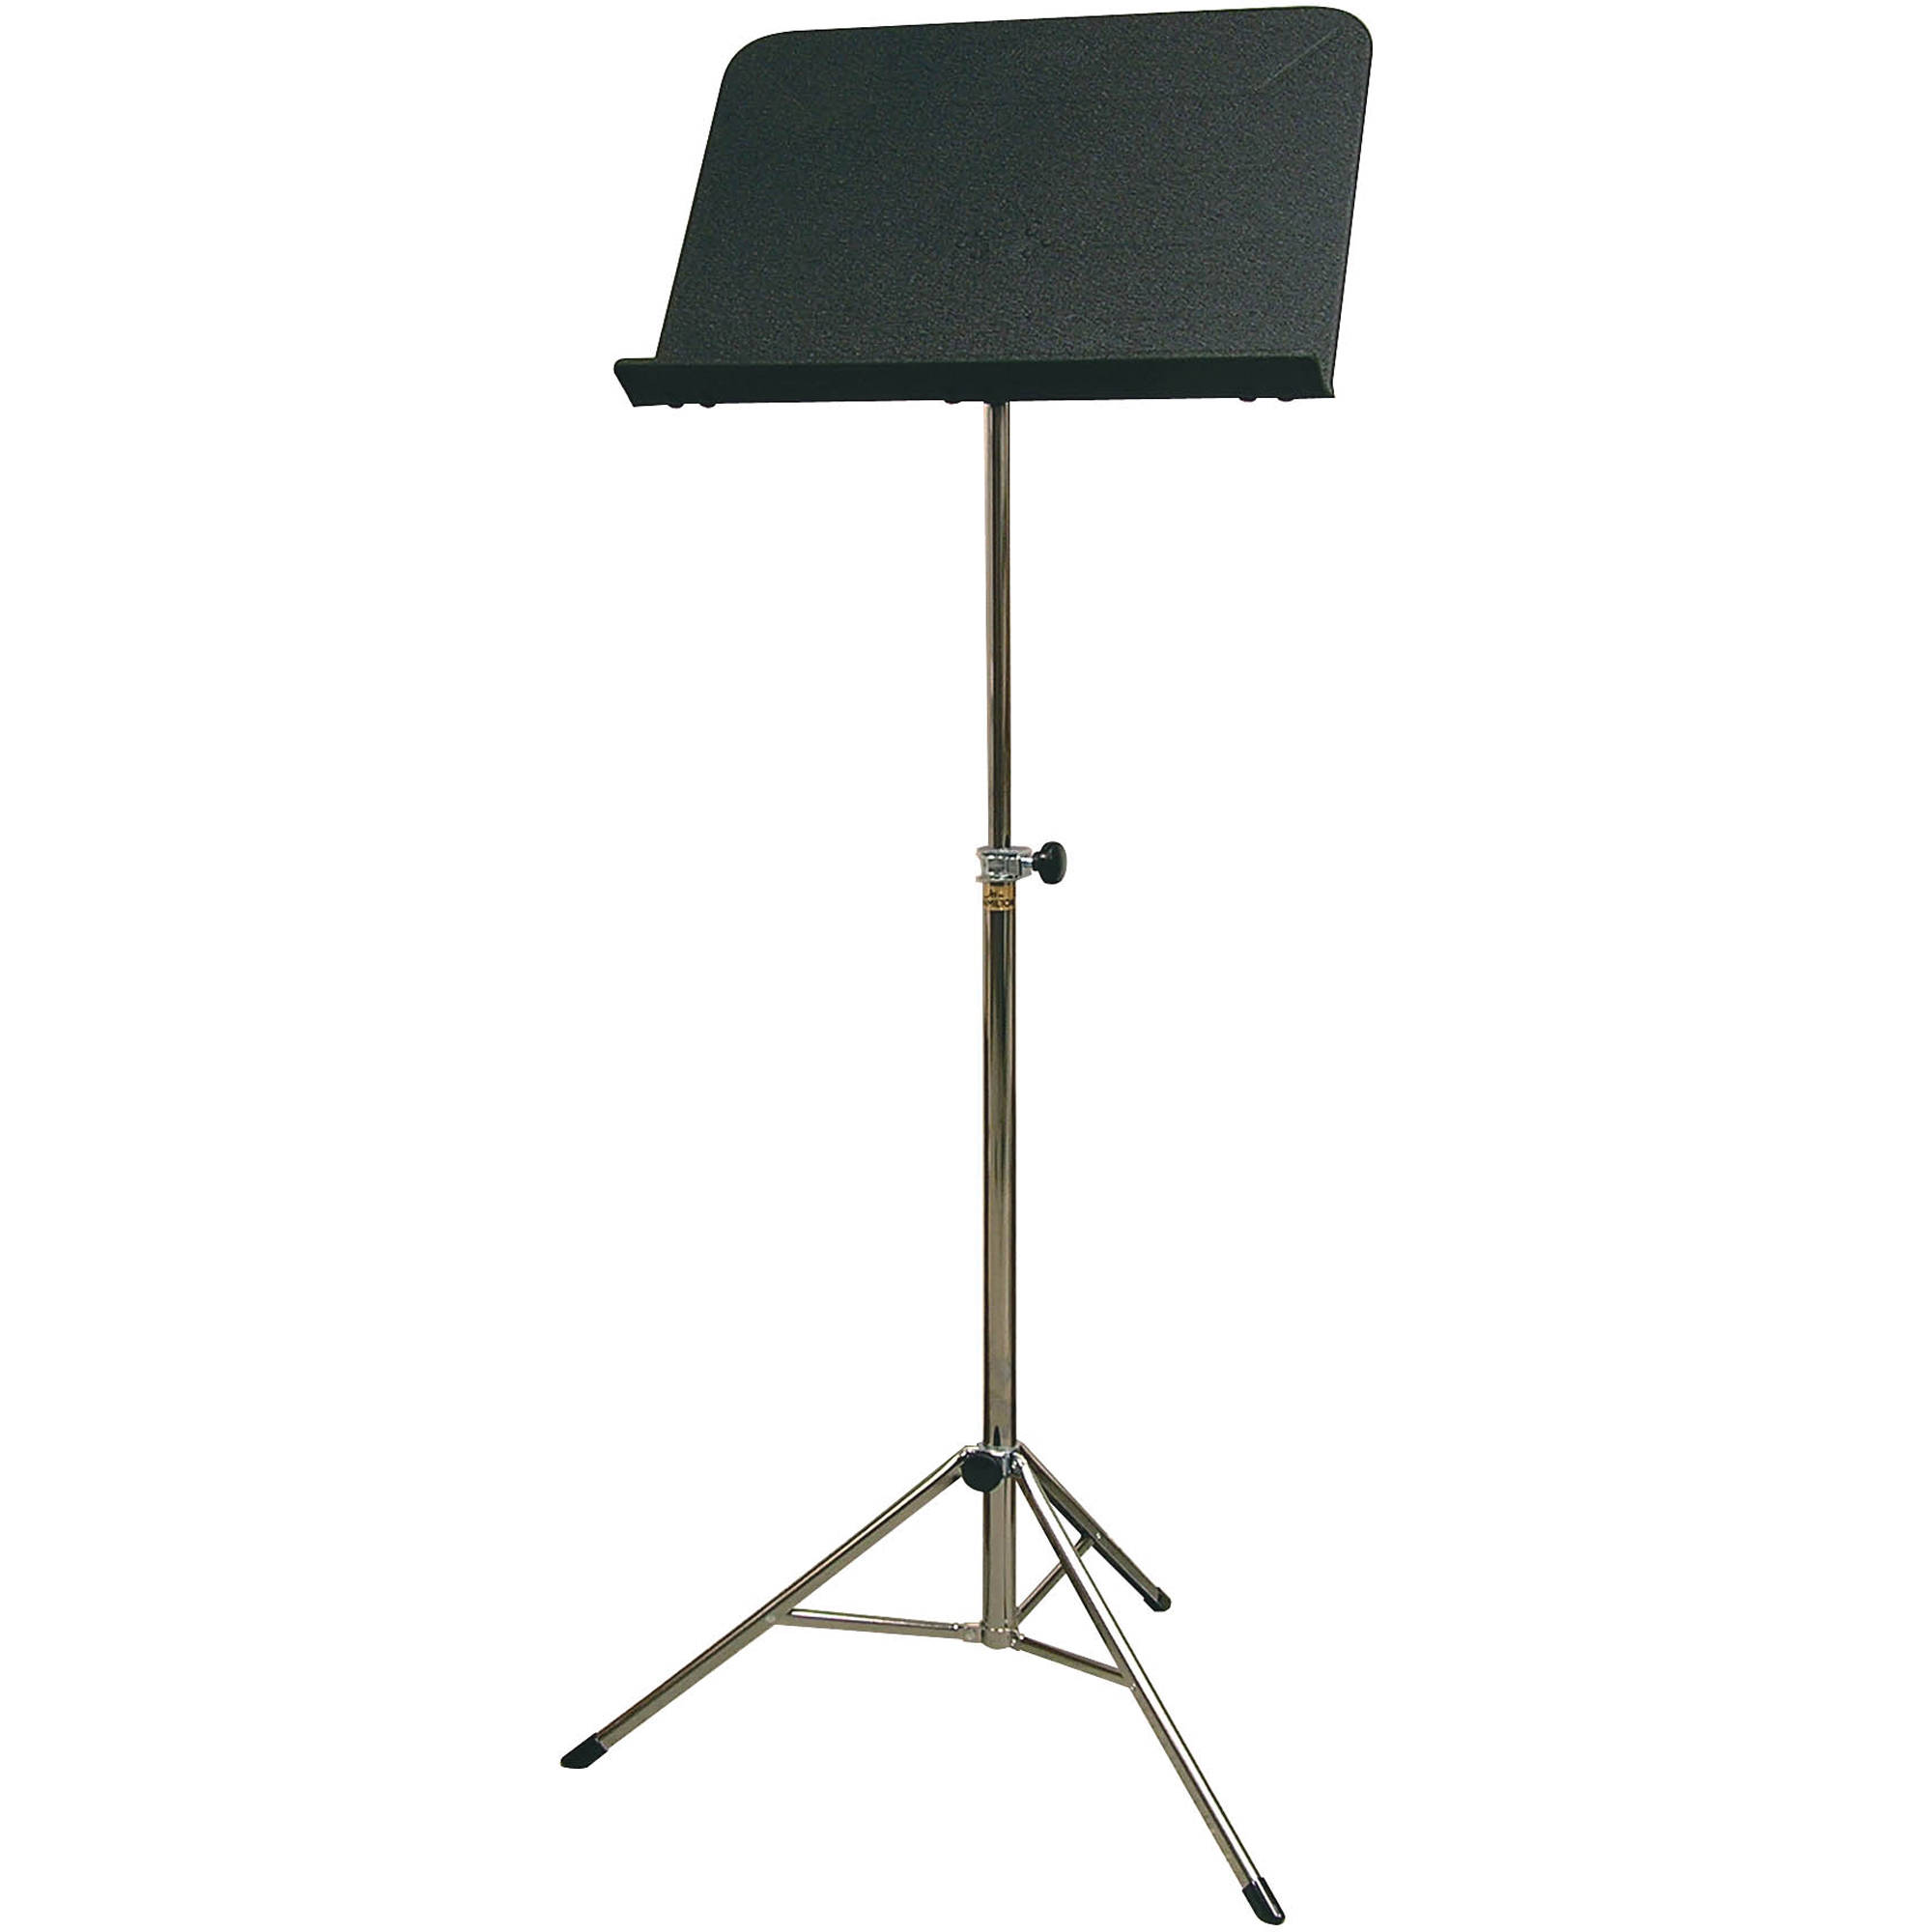 hamilton stands kb50 the traveler portable sheet music stand. Black Bedroom Furniture Sets. Home Design Ideas